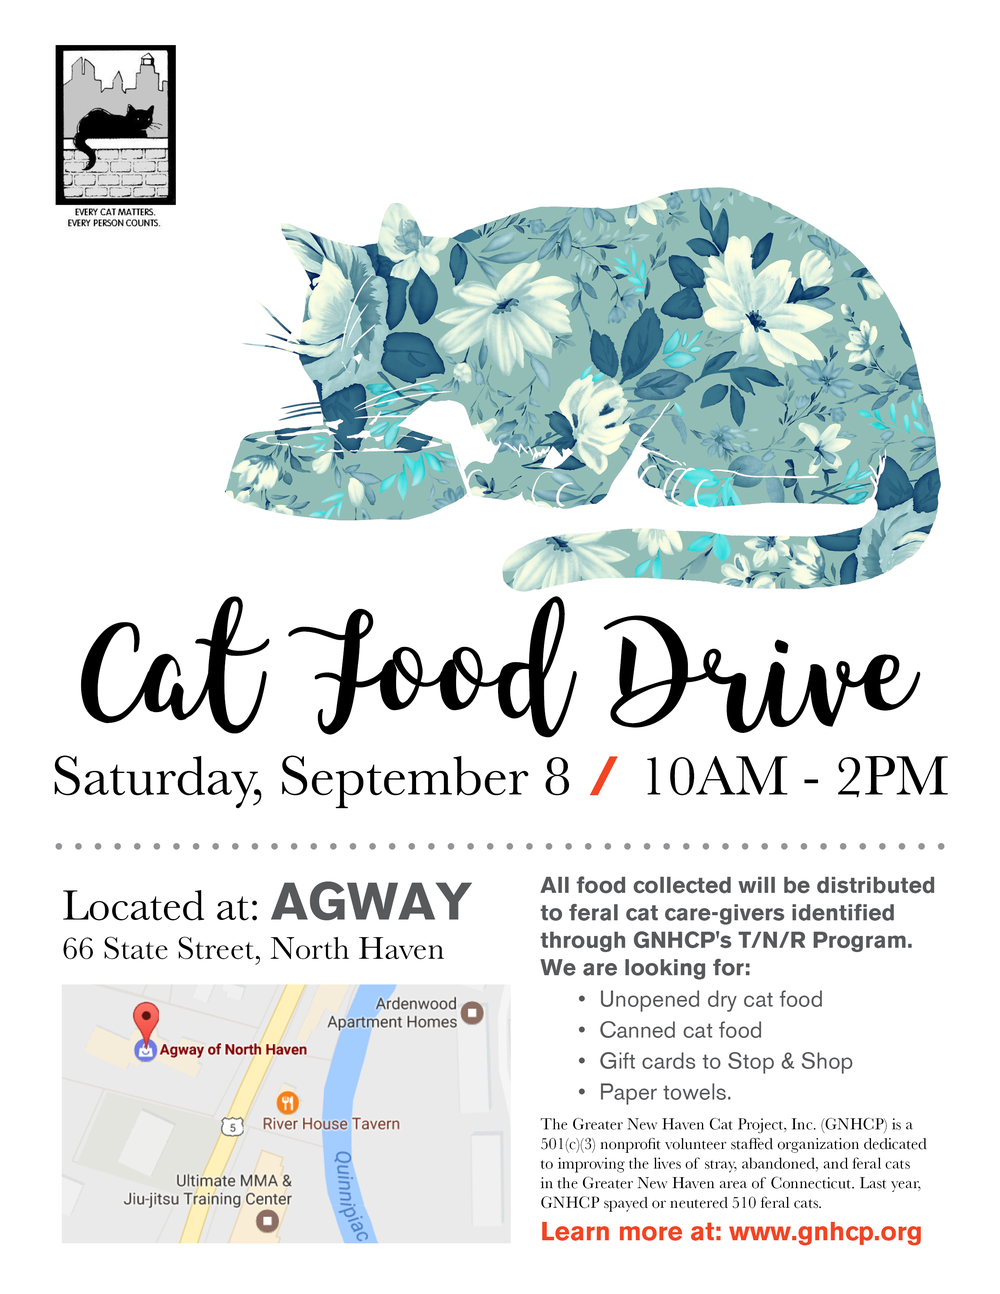 Catfooddrive_Agway_20184.png